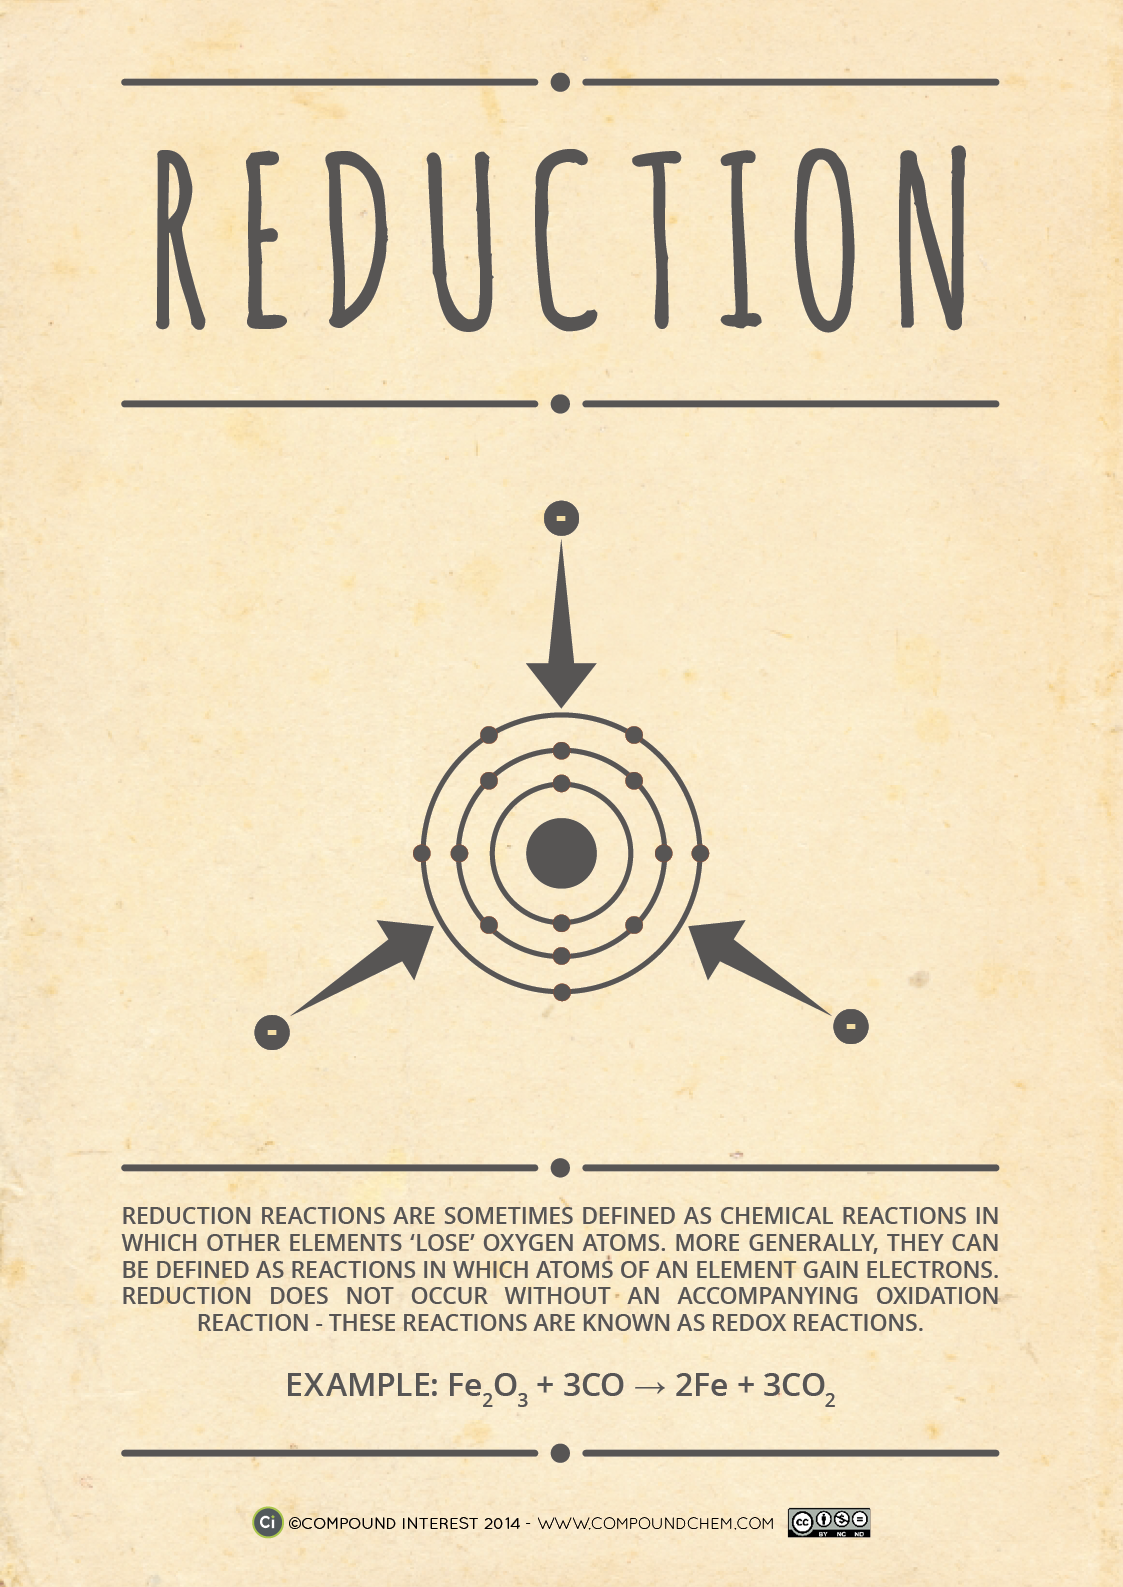 Here S Part 2 Of The Chemical Reactions Posters Featuring